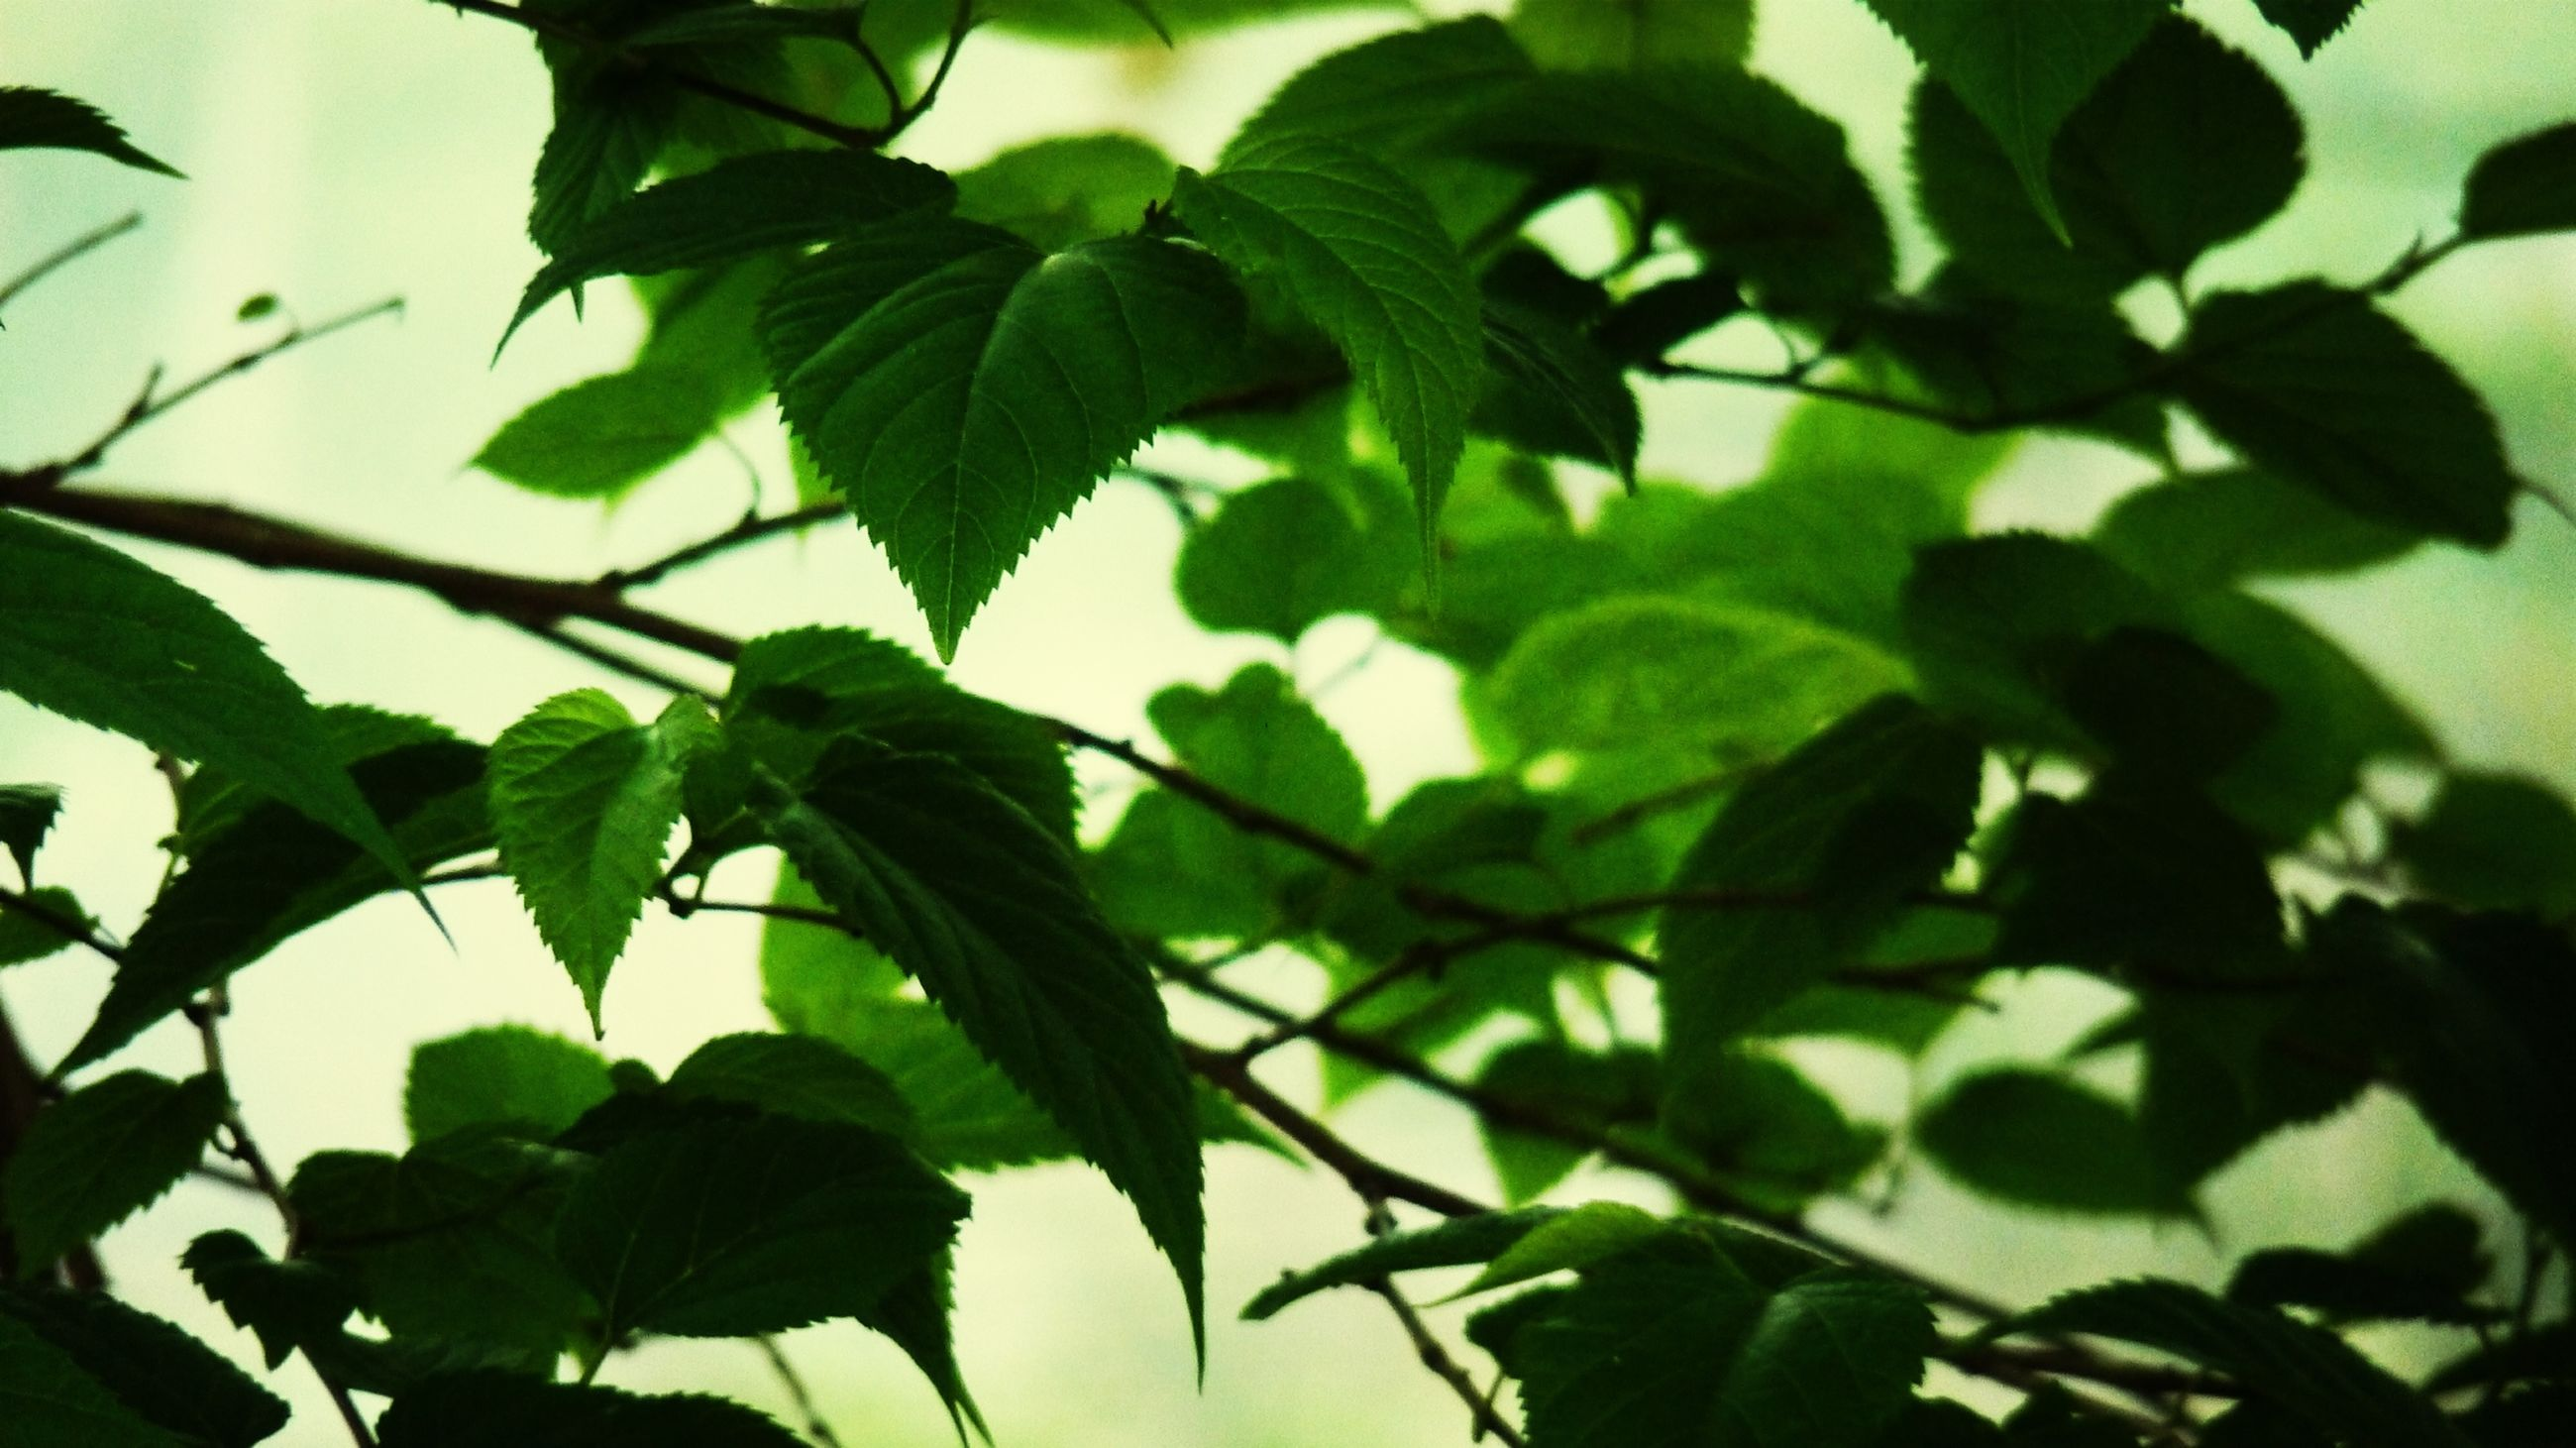 leaf, growth, green color, branch, tree, low angle view, nature, close-up, plant, leaves, focus on foreground, sunlight, beauty in nature, day, leaf vein, no people, outdoors, tranquility, backgrounds, twig